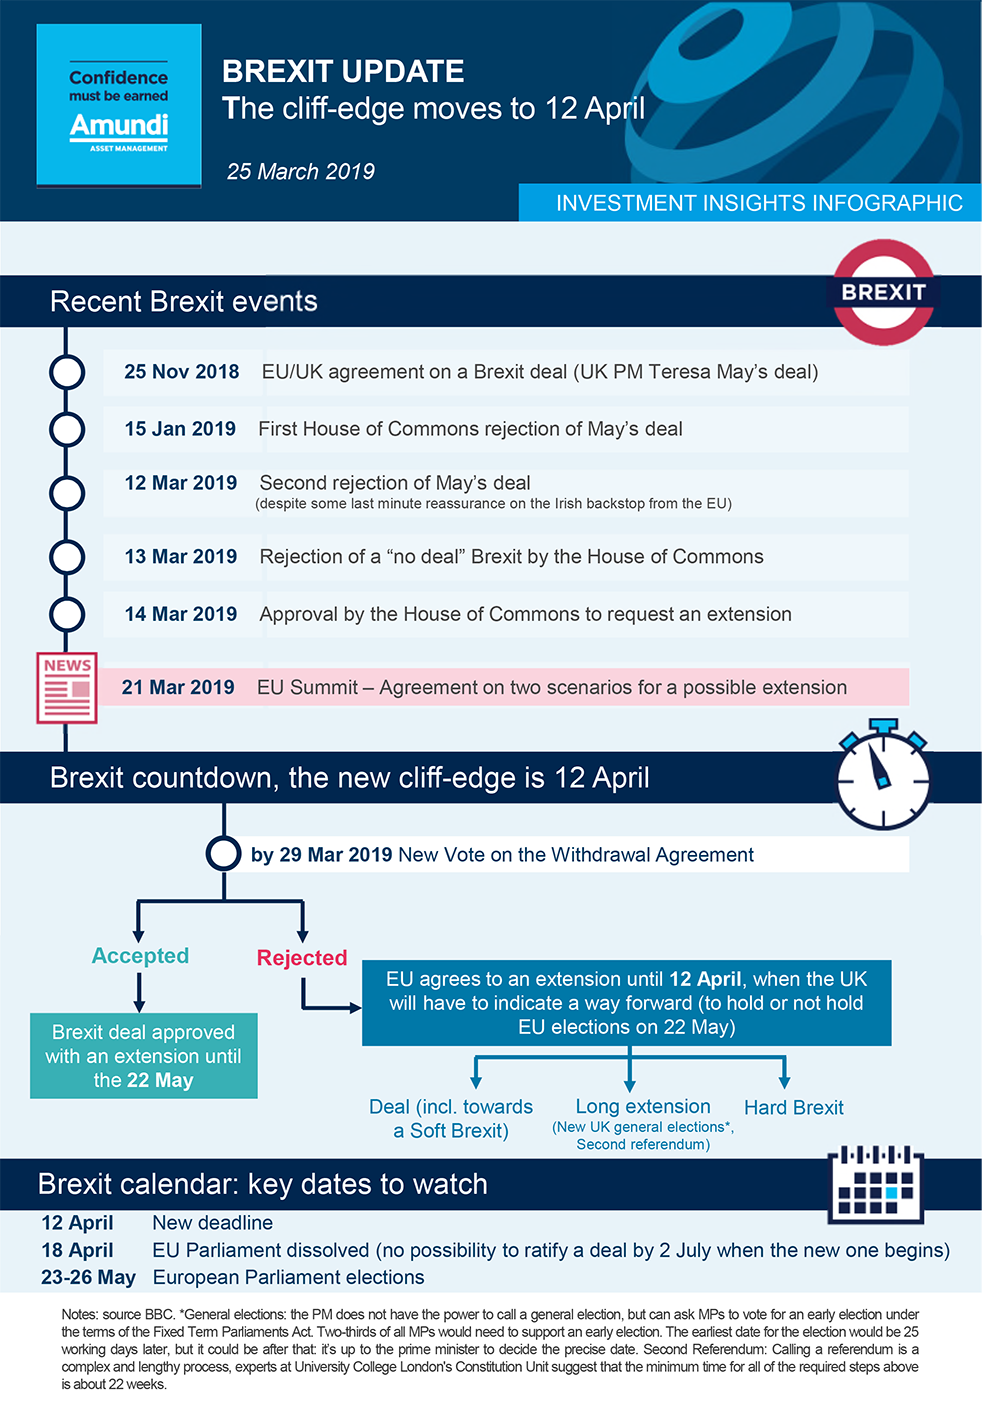 Inv Insights Infographic Brexit 25 march 2019-1